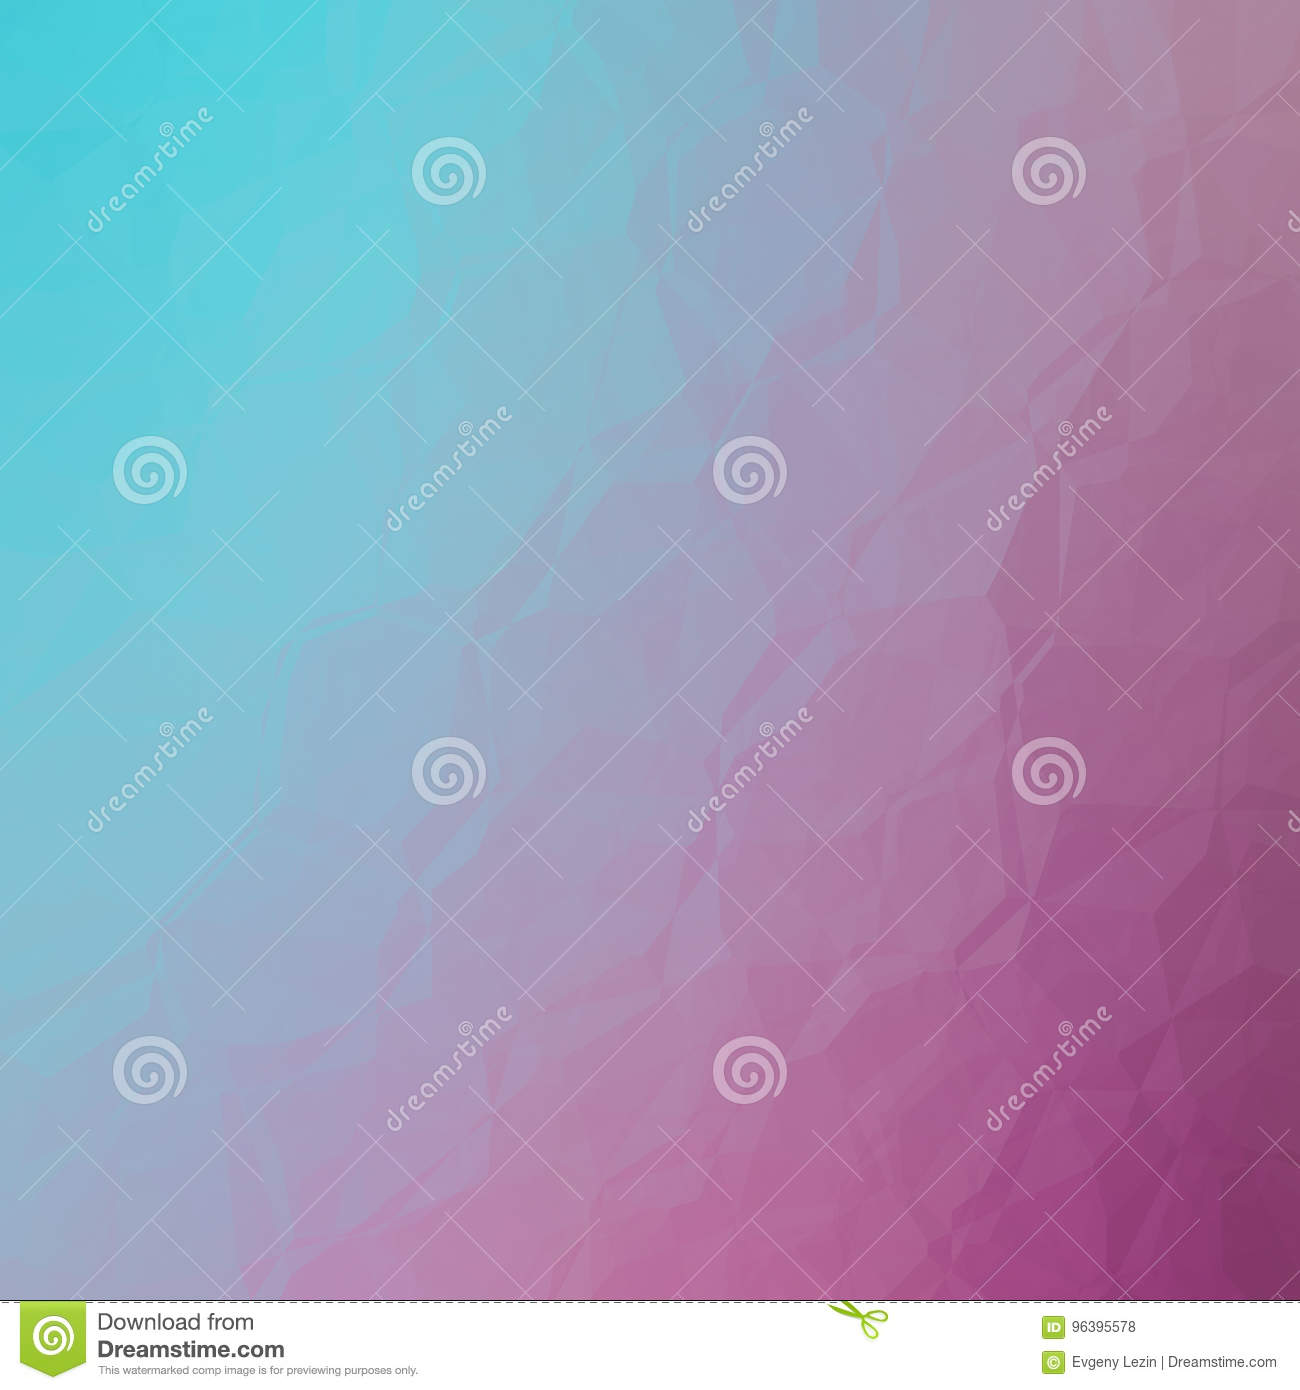 blue pink abstract geometrical background design graphic stock